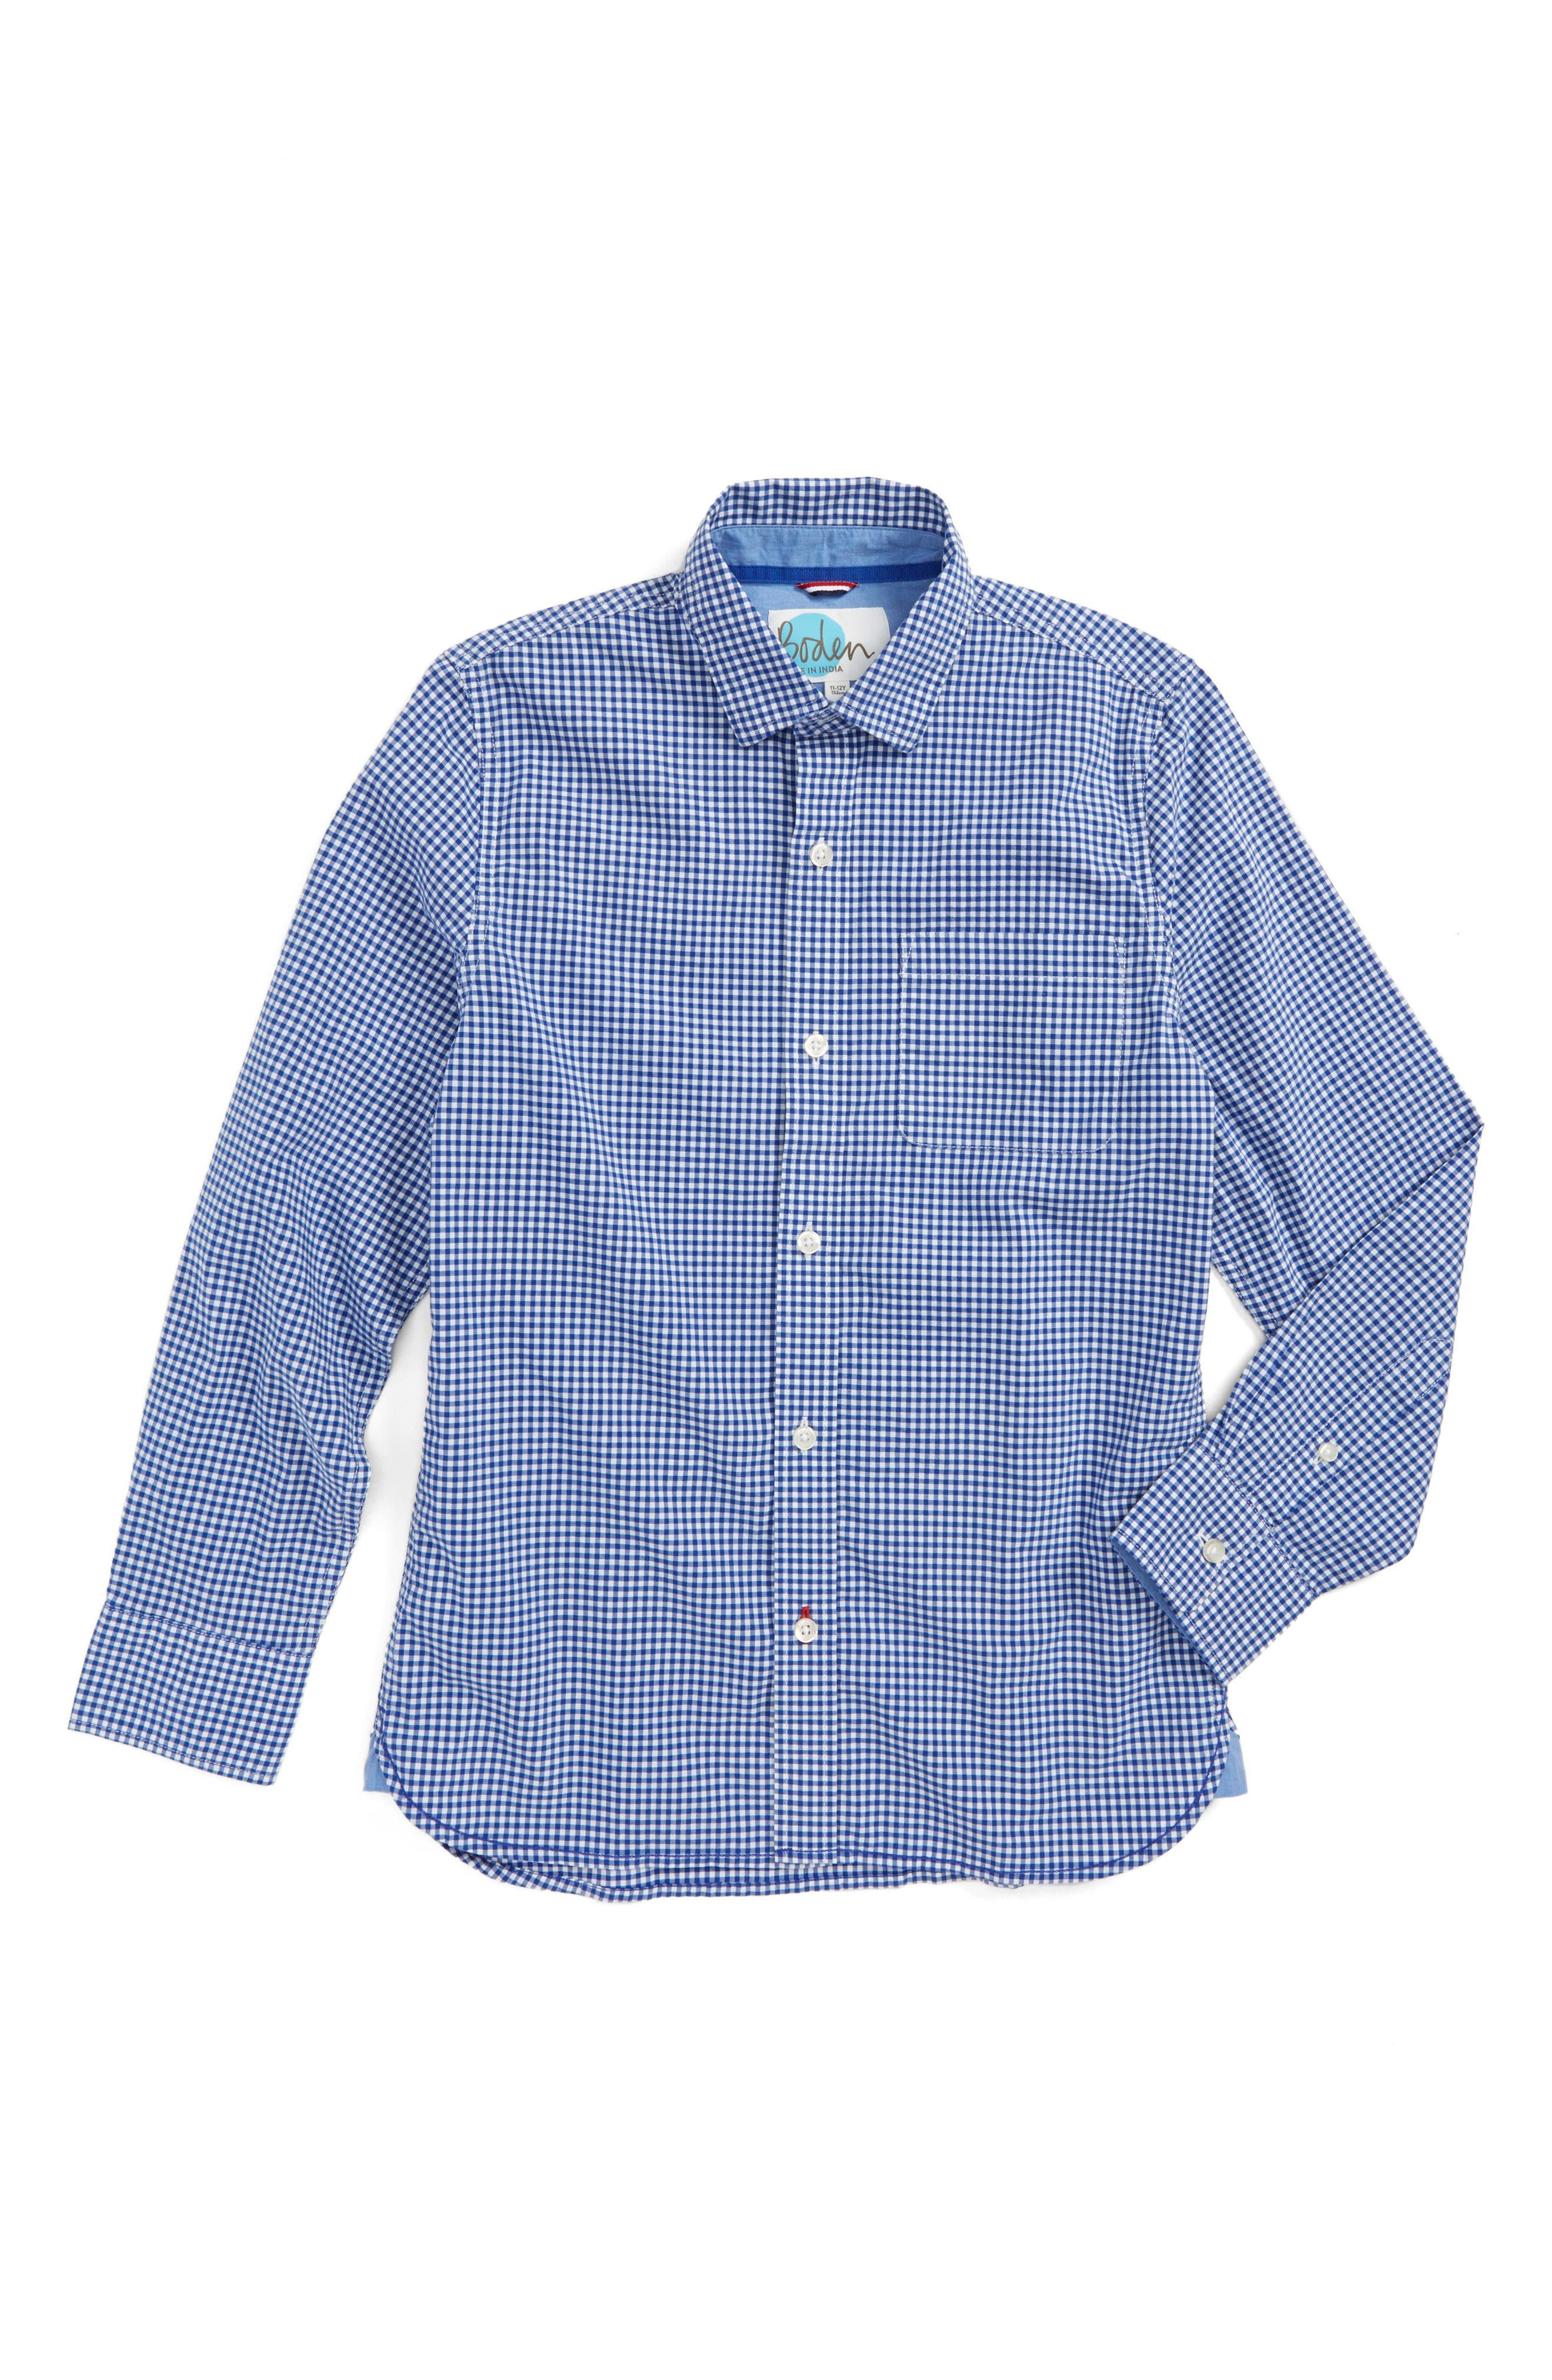 Laundered Shirt,                         Main,                         color, 424